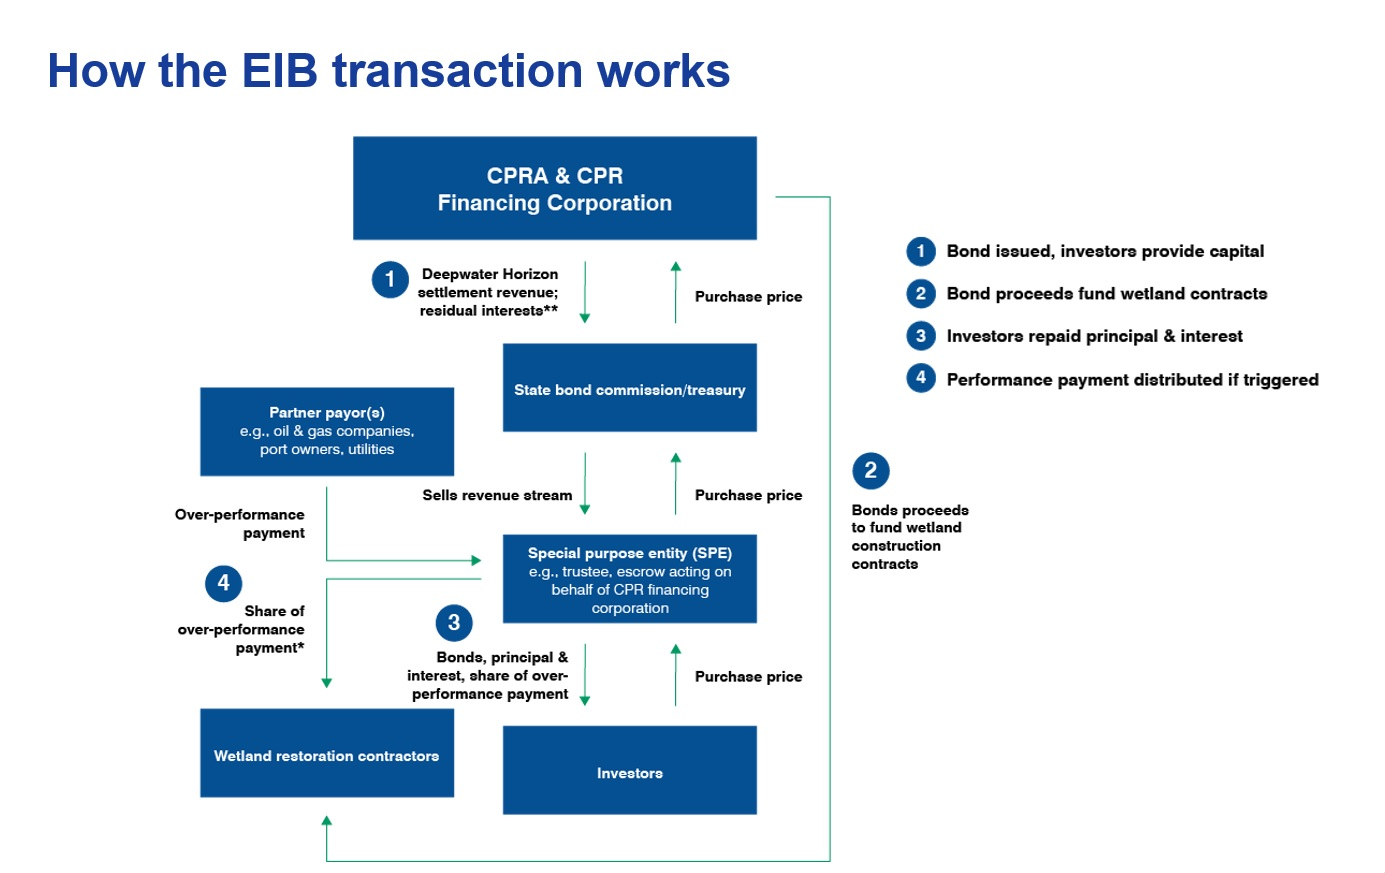 How the Louisiana environmental impact bond transaction works